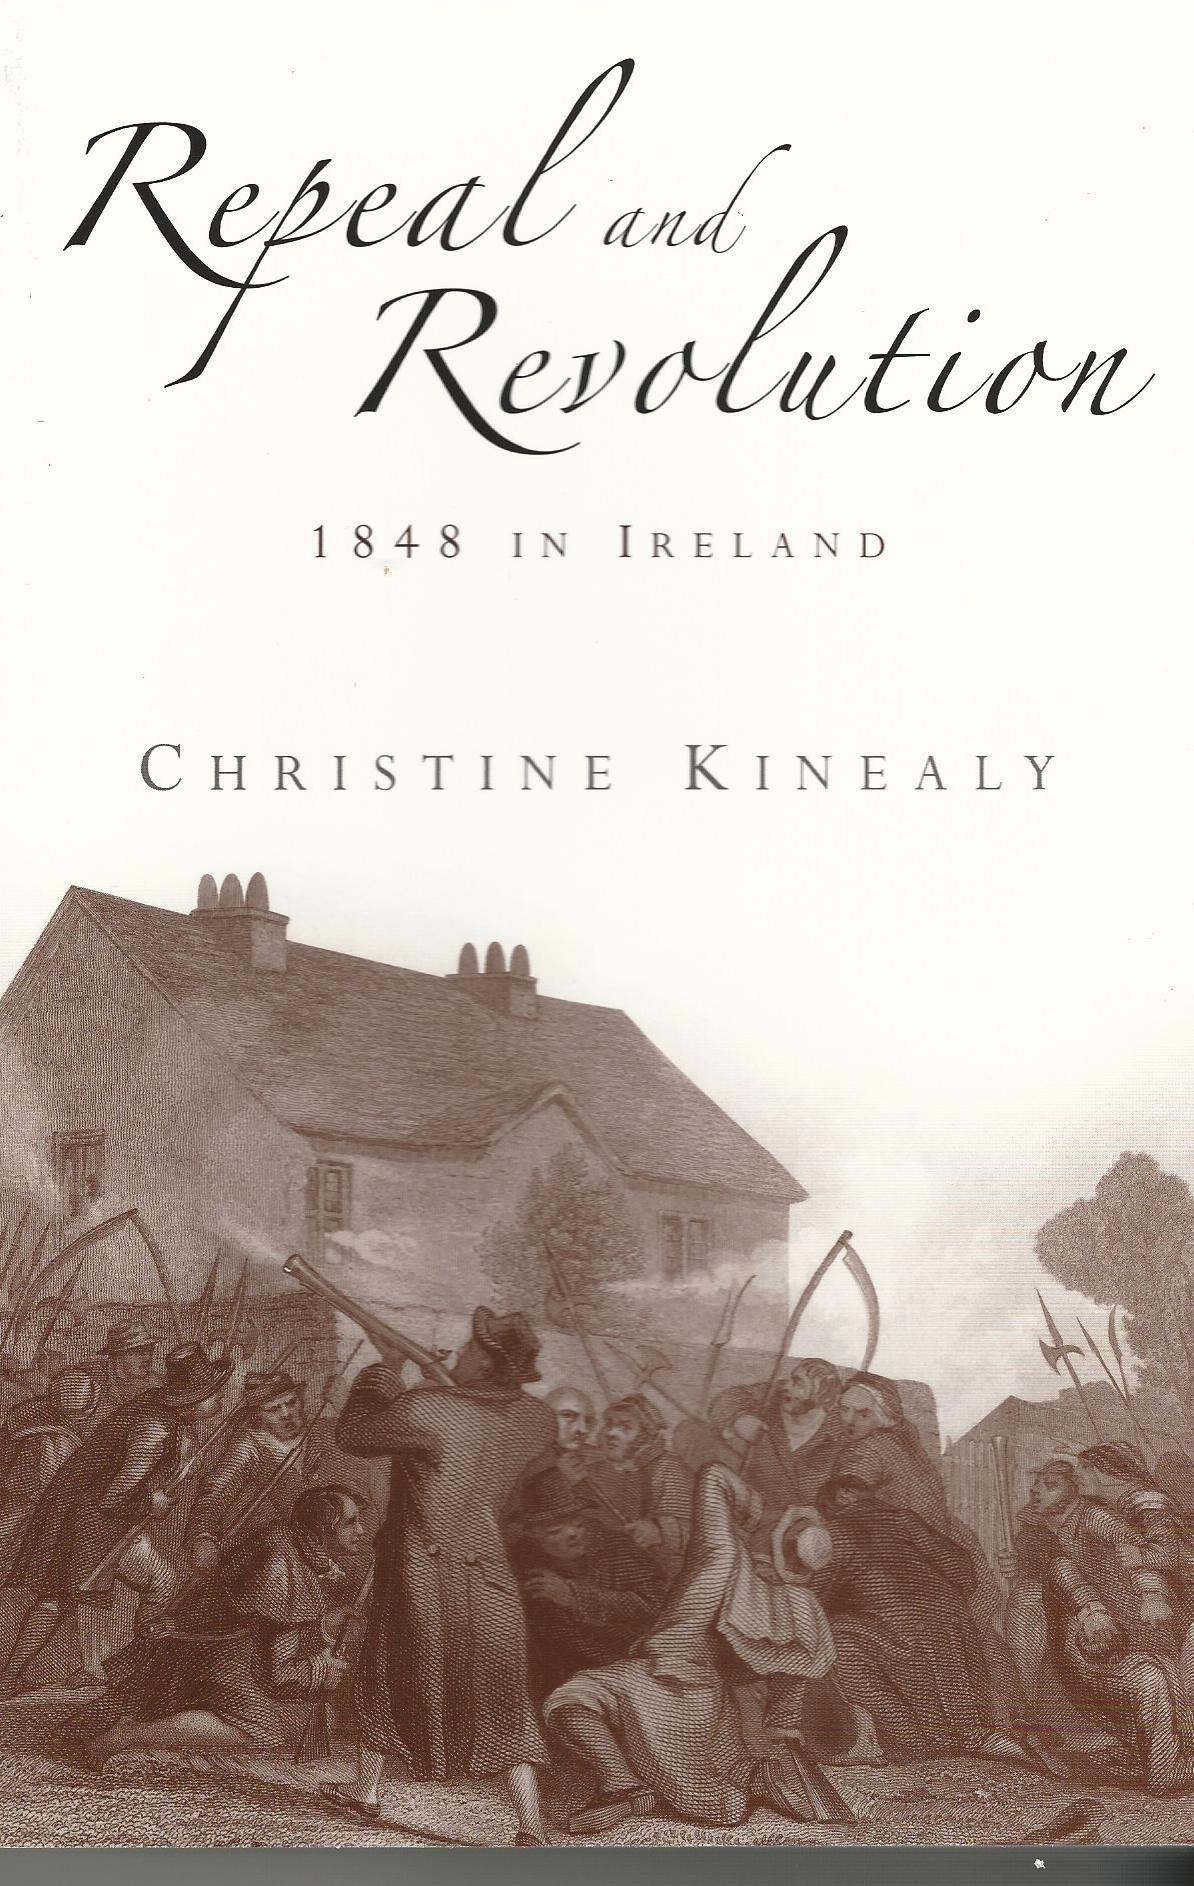 Image for Repeal and revolution: 1848 in Ireland